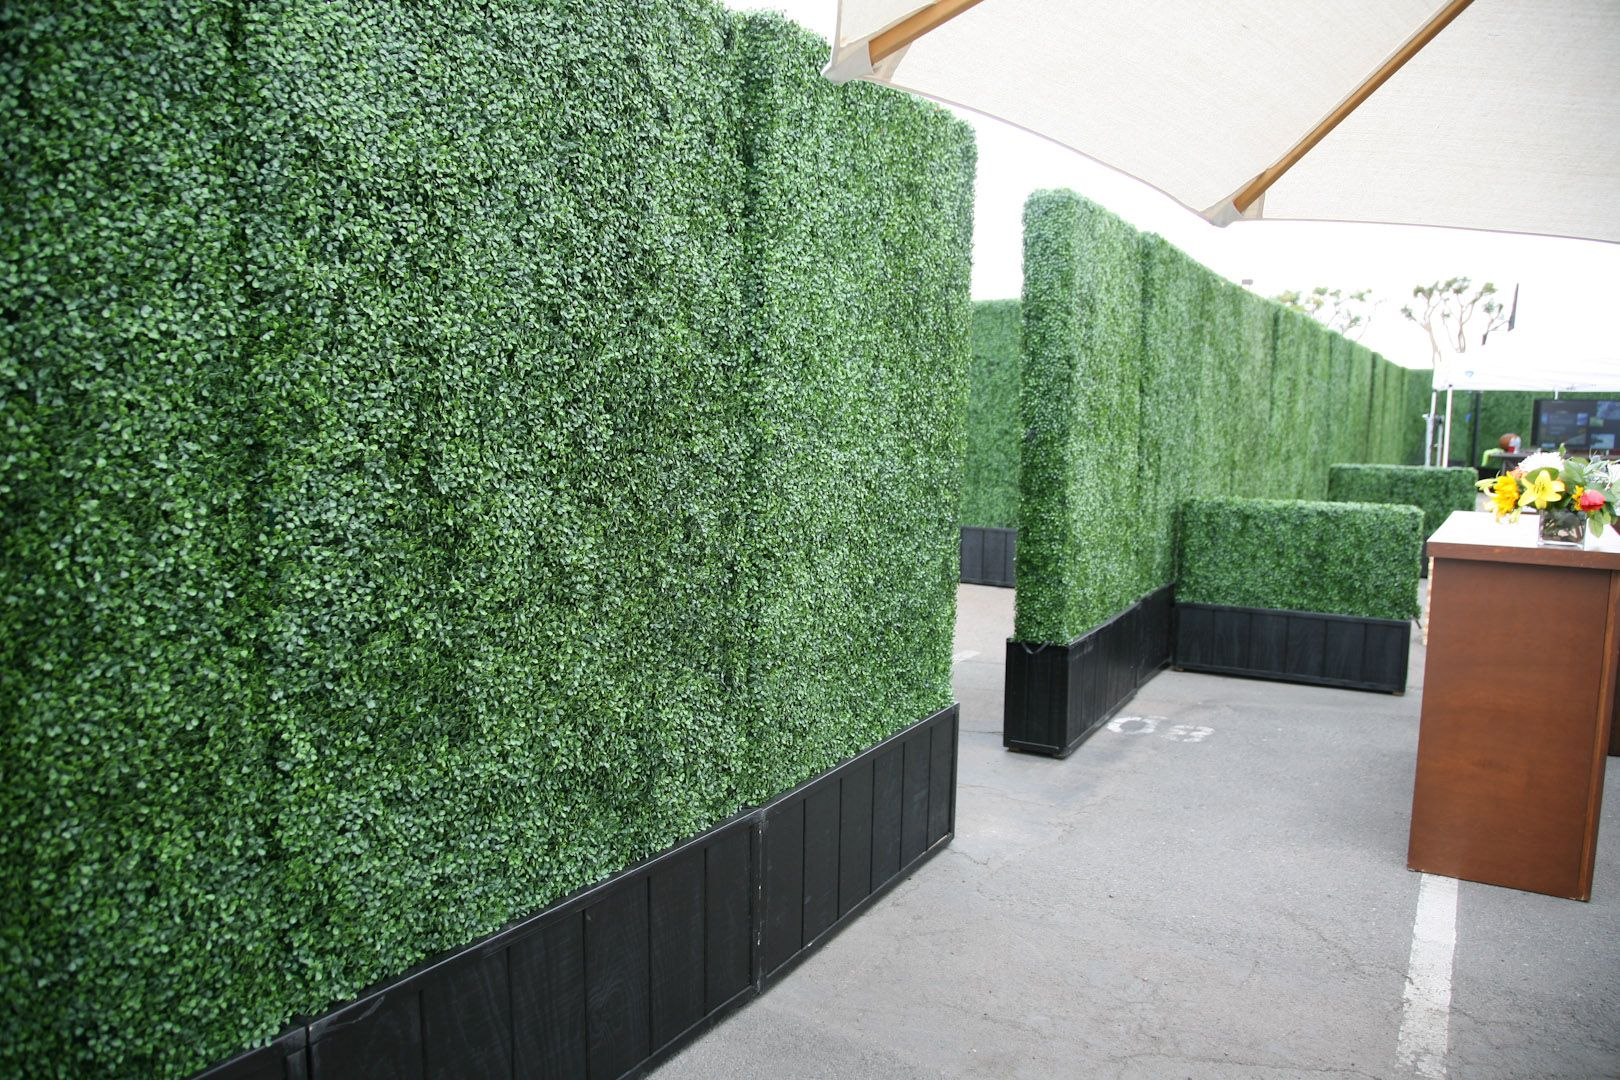 Boxwood Hedge Panels 4 X 8 A1 Party Rental Small Artificial Plants Artificial Grass Wall Cheap Artificial Plants